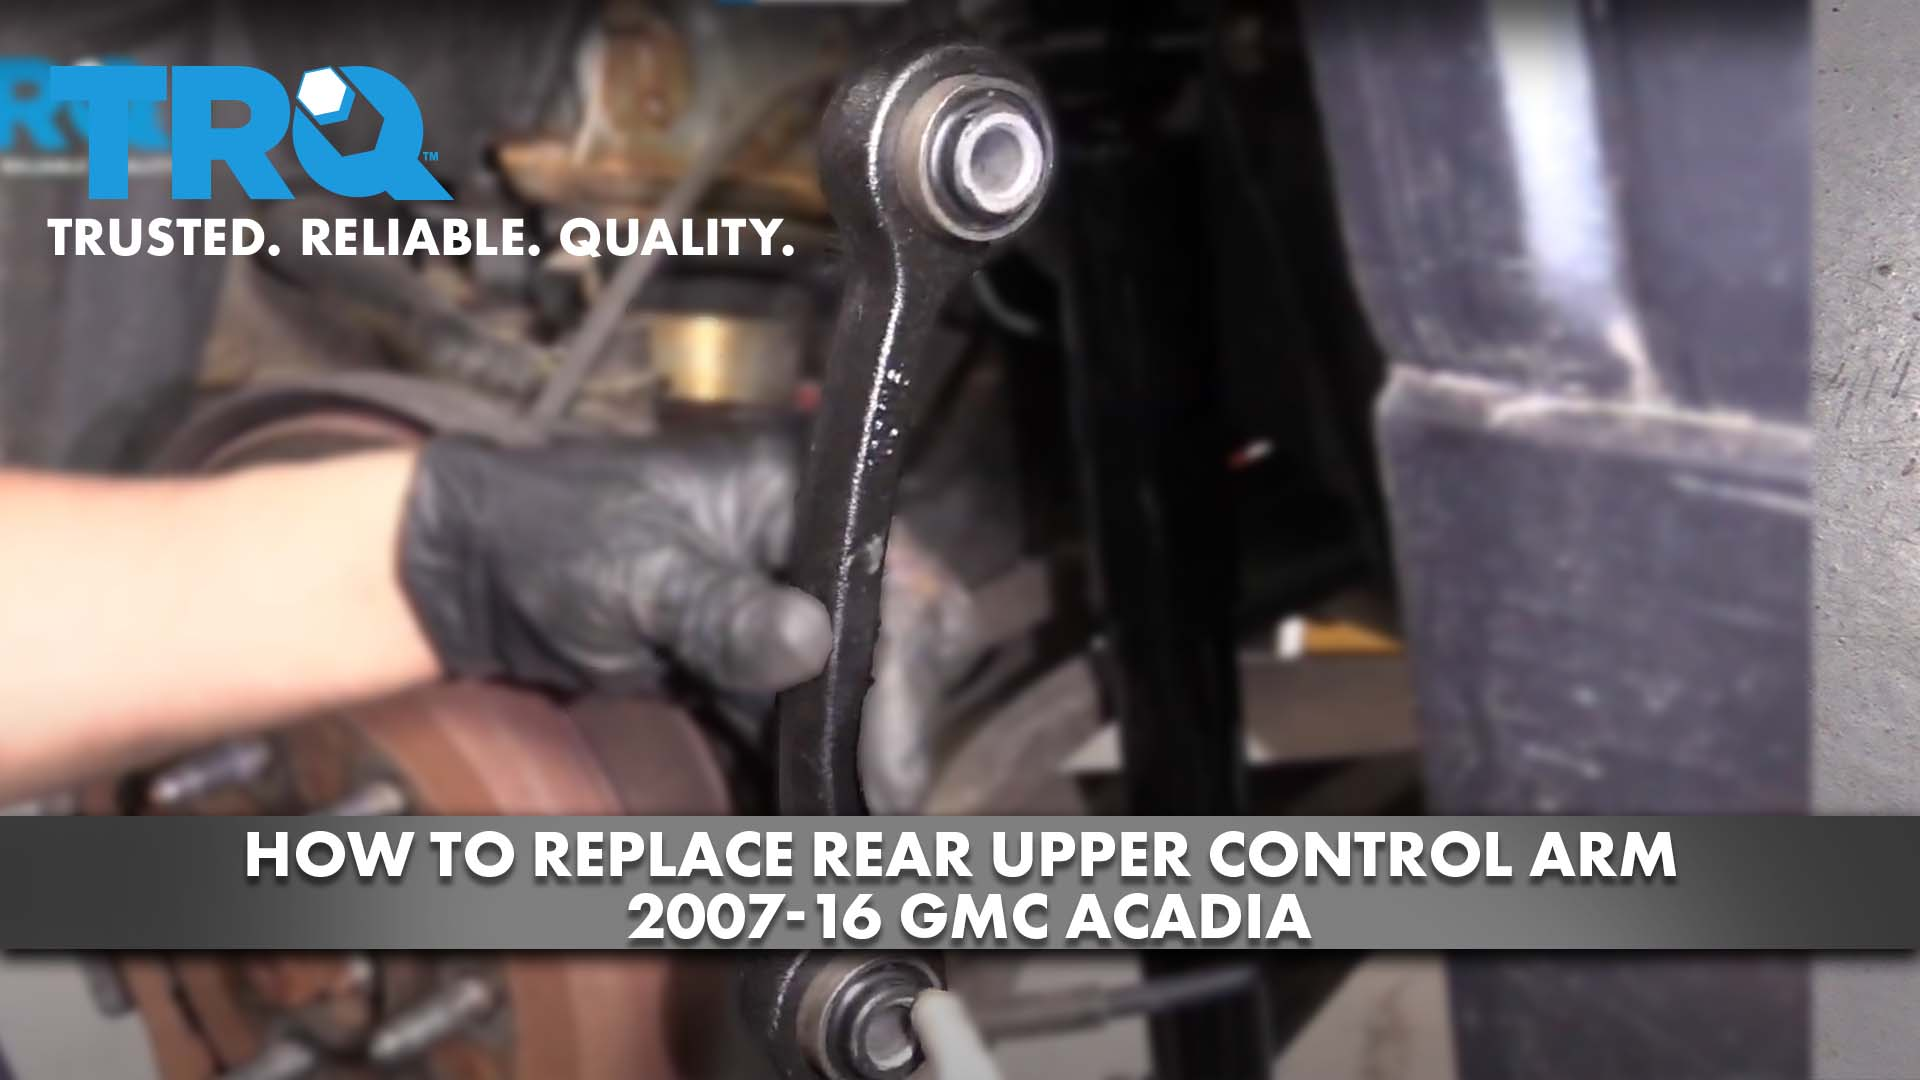 How To Replace Rear Upper Control Arm 2007-16 GMC Acadia